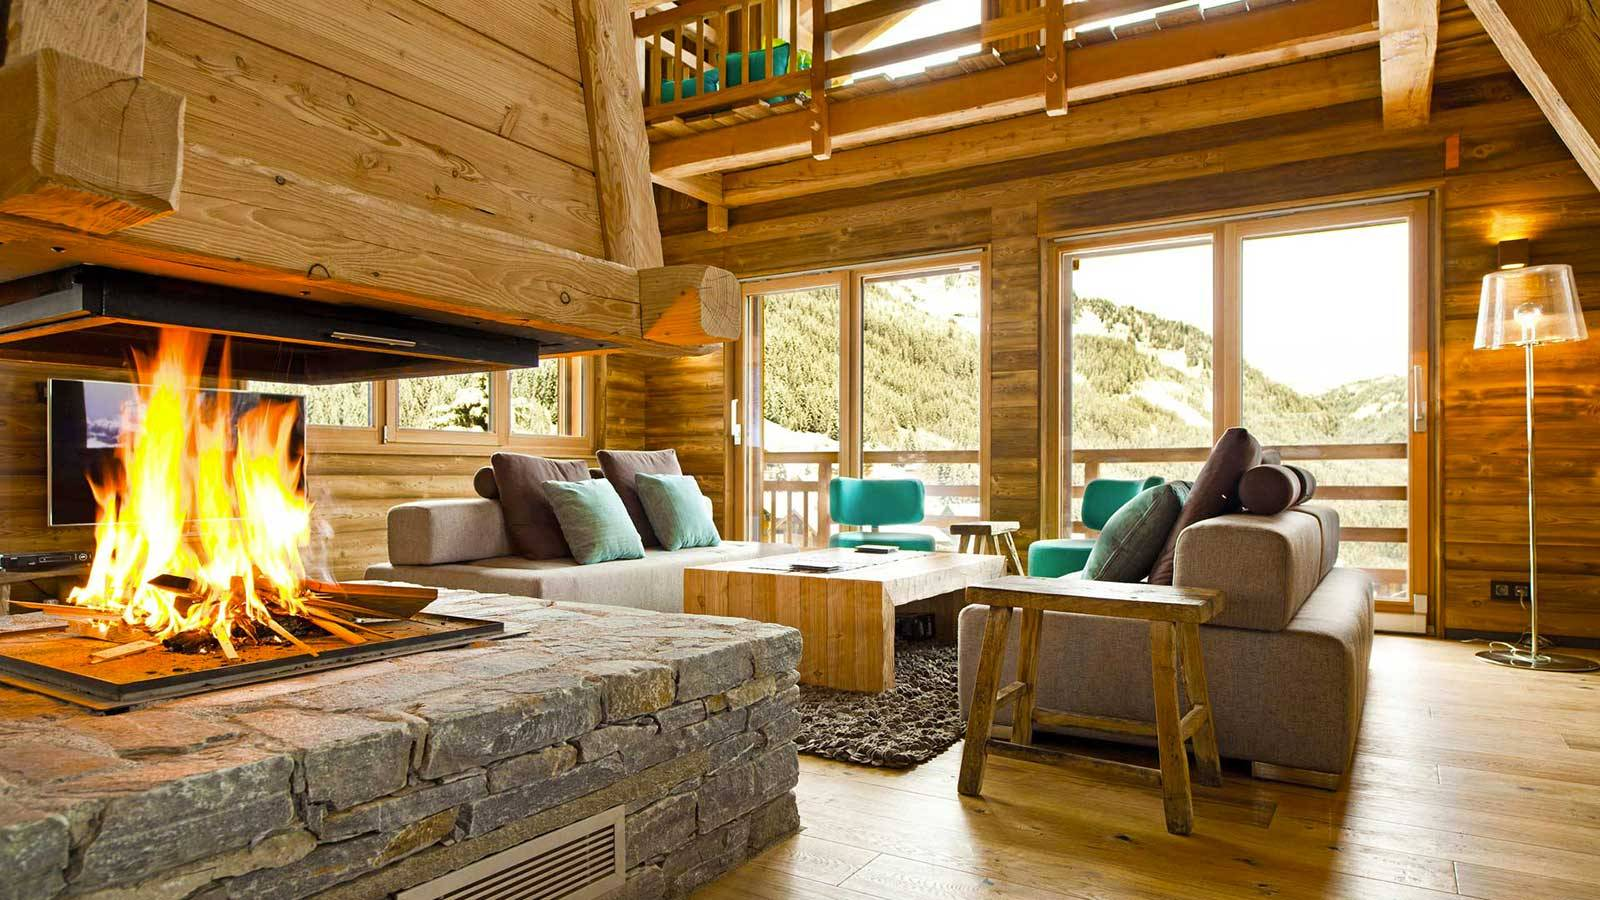 Emejing chalet en bois interieur gallery design trends for Decoration interieur bois moderne